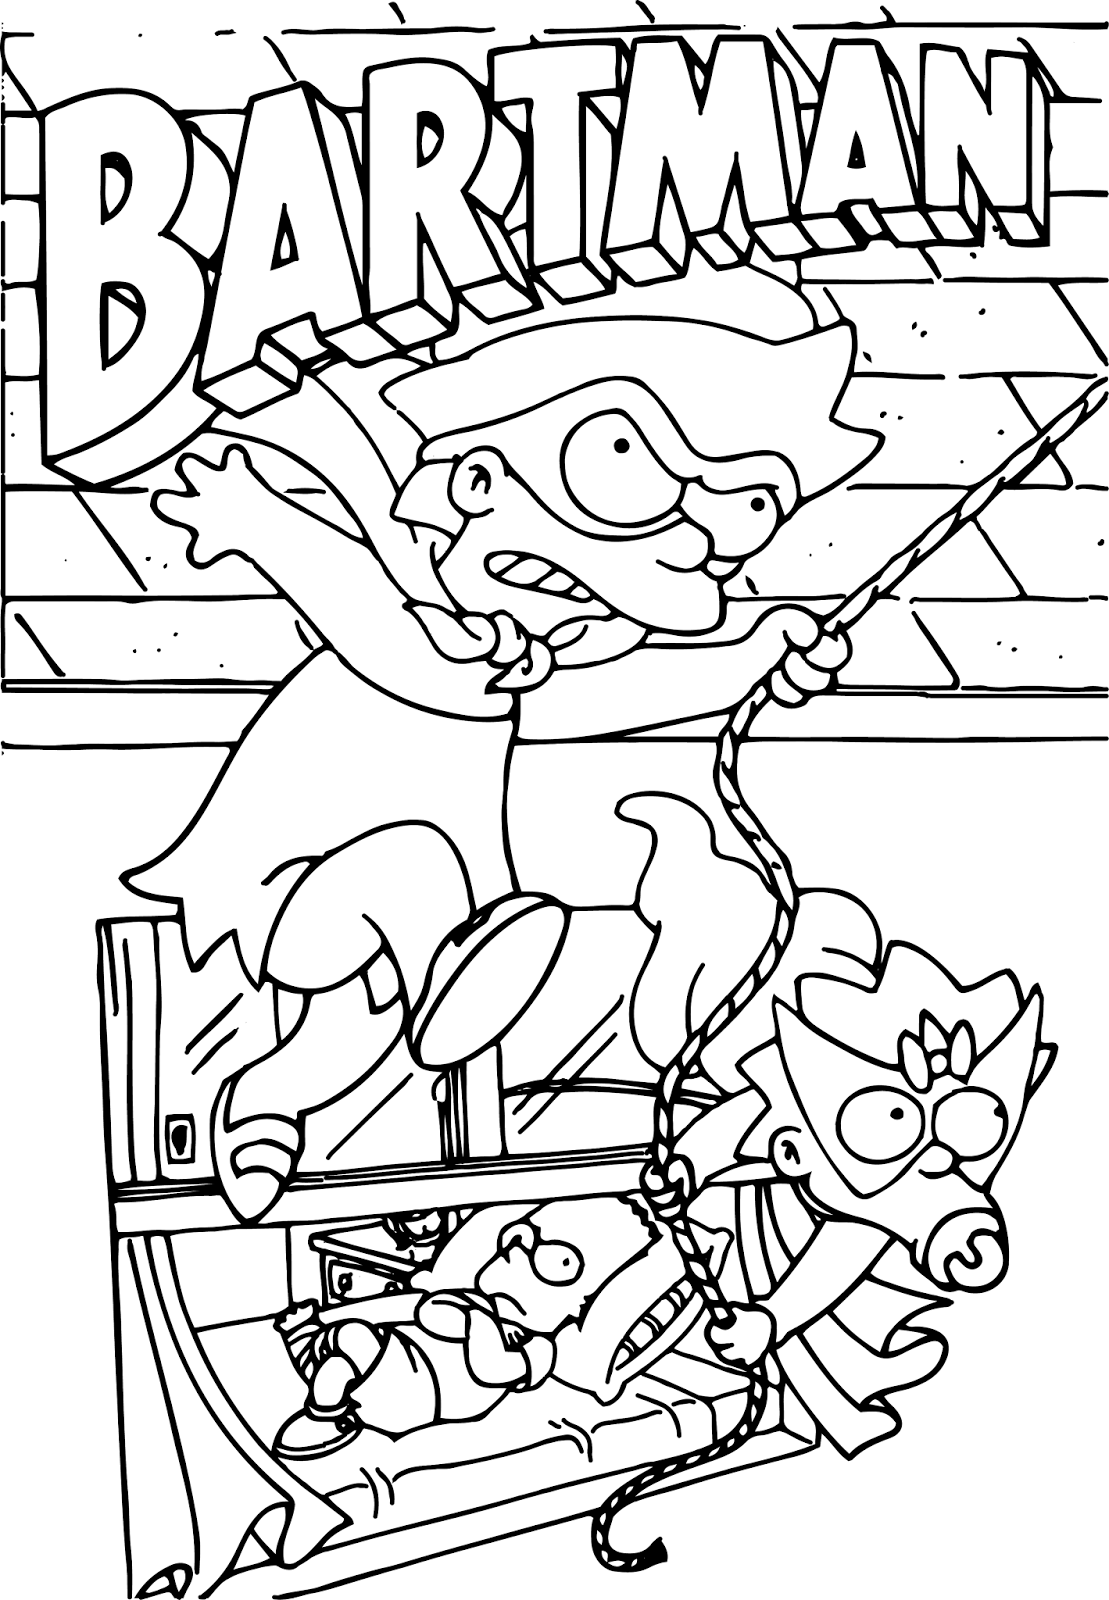 gangsta simpsons coloring pages bart simpson coloring pages at getcoloringscom free pages simpsons coloring gangsta